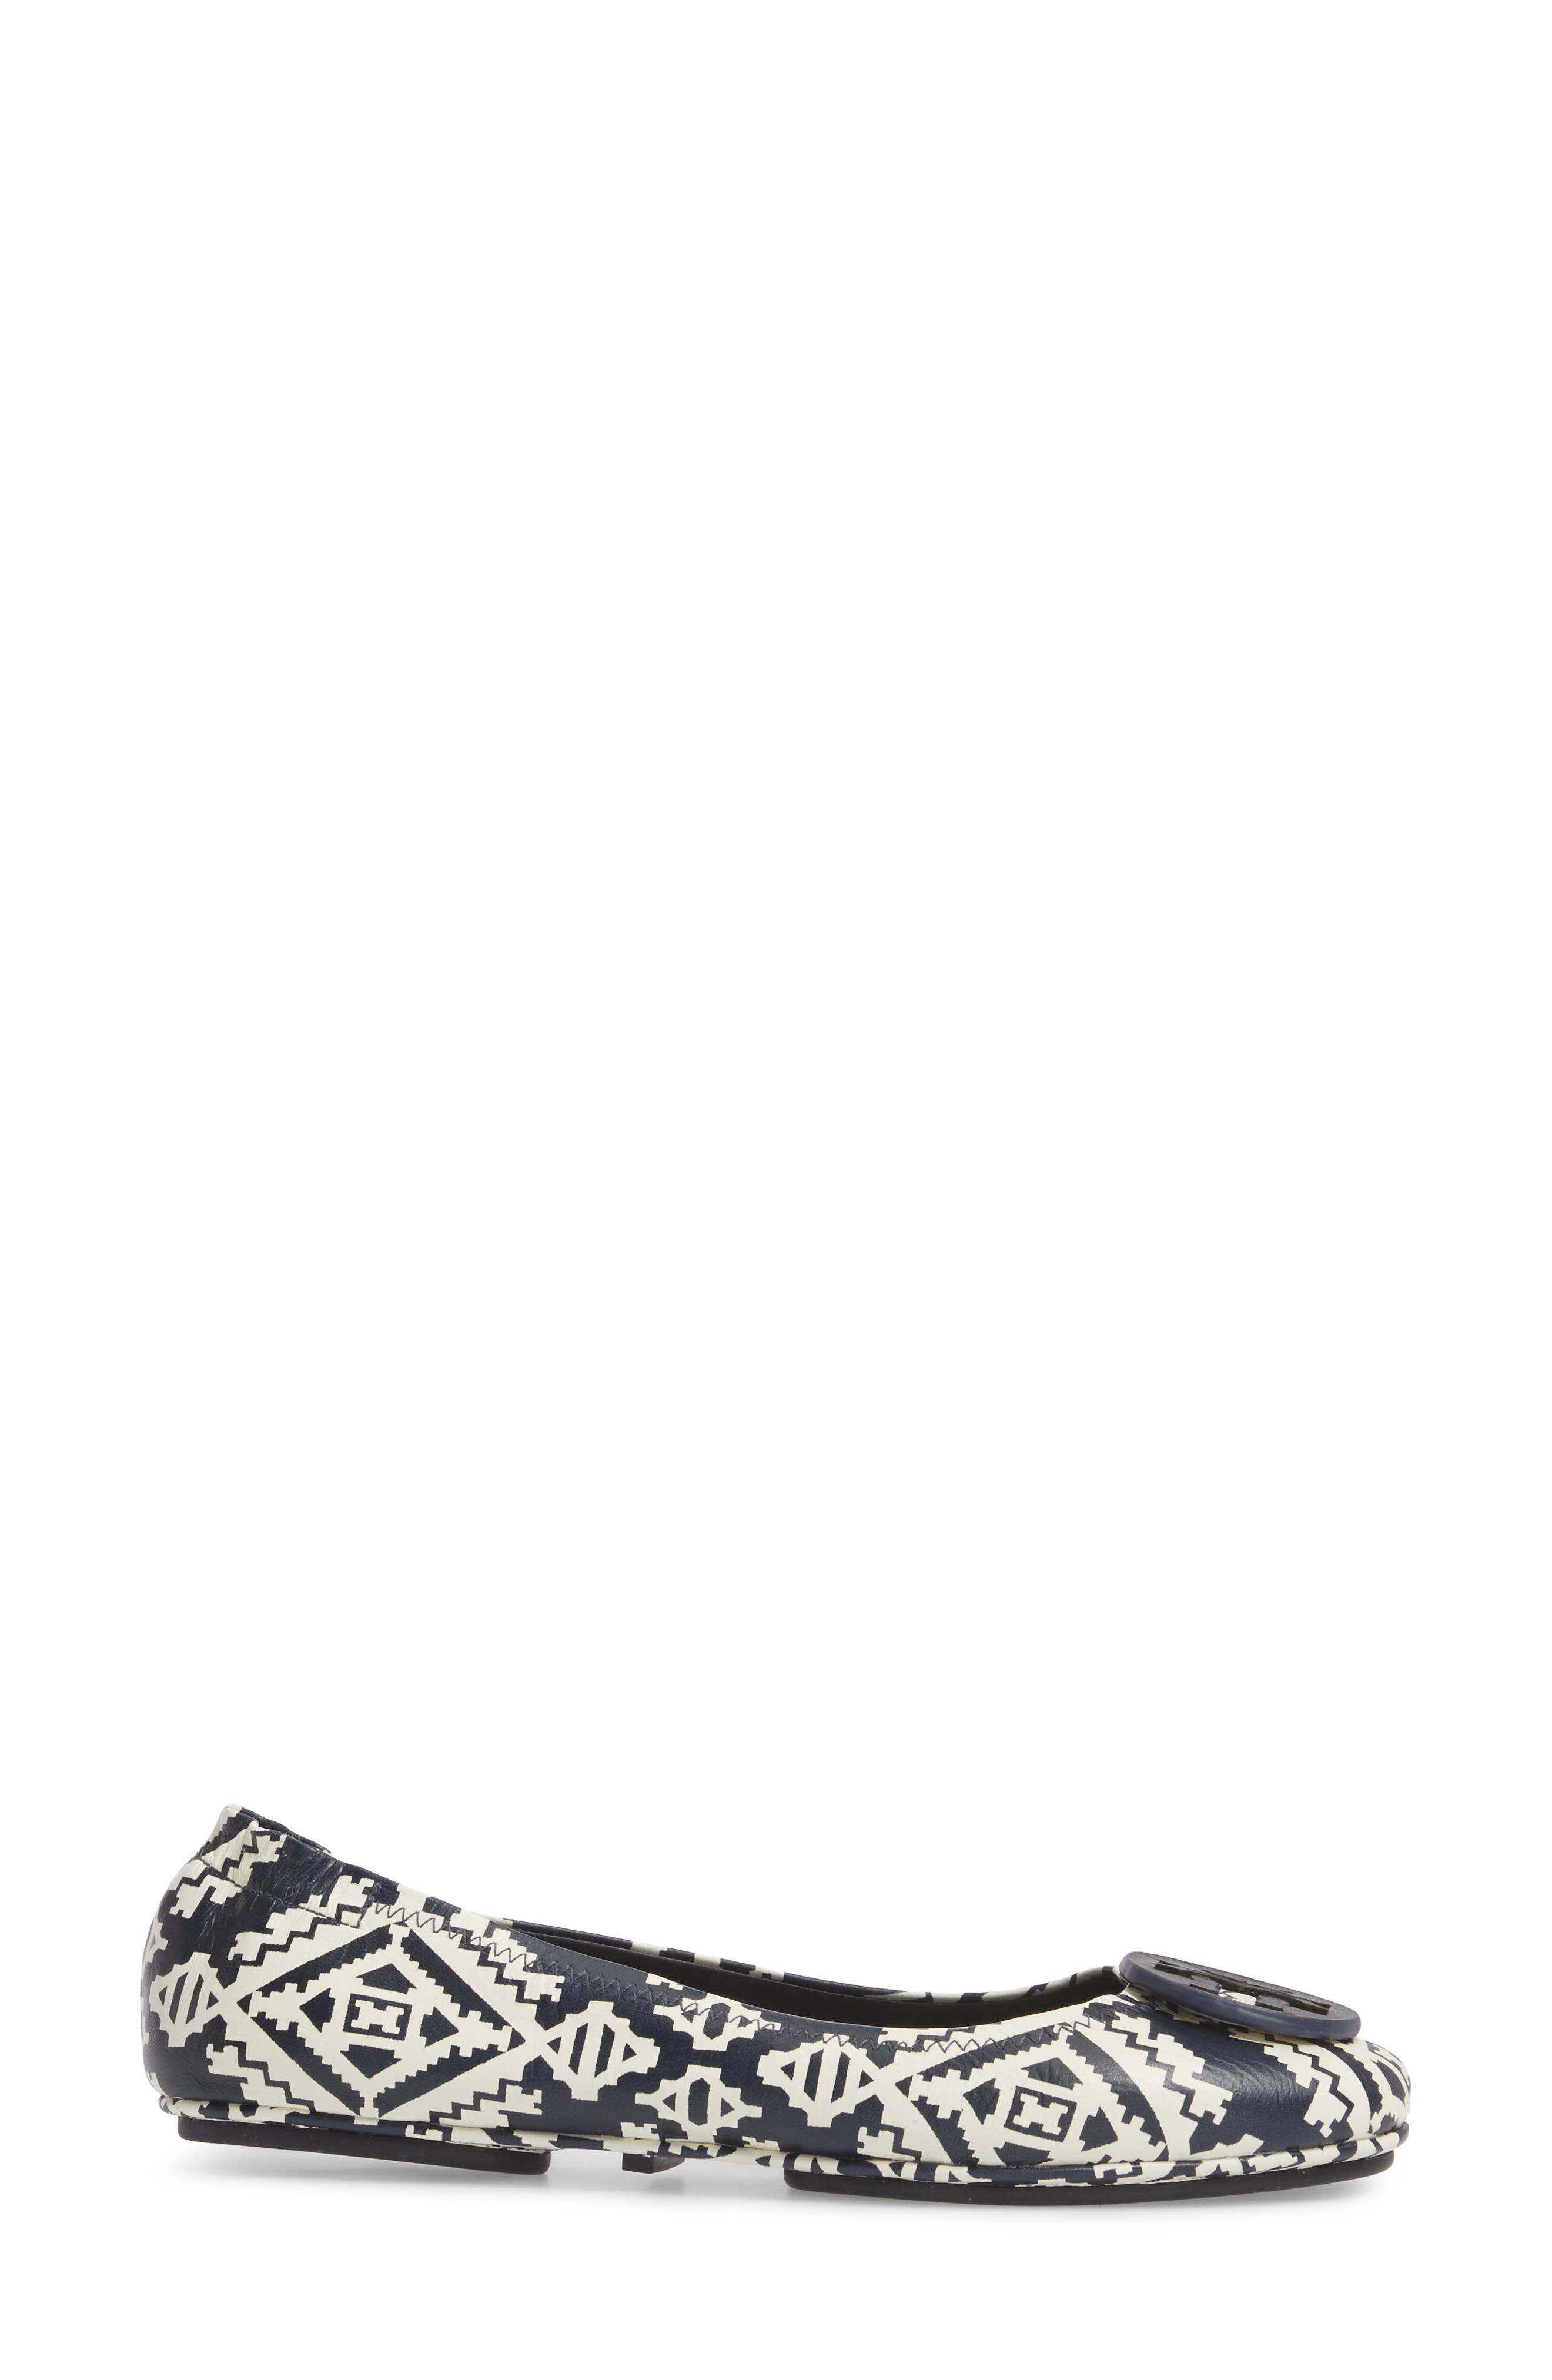 'Minnie' Travel Ballet Flat,                             Alternate thumbnail 3, color,                             Tapestry Geo